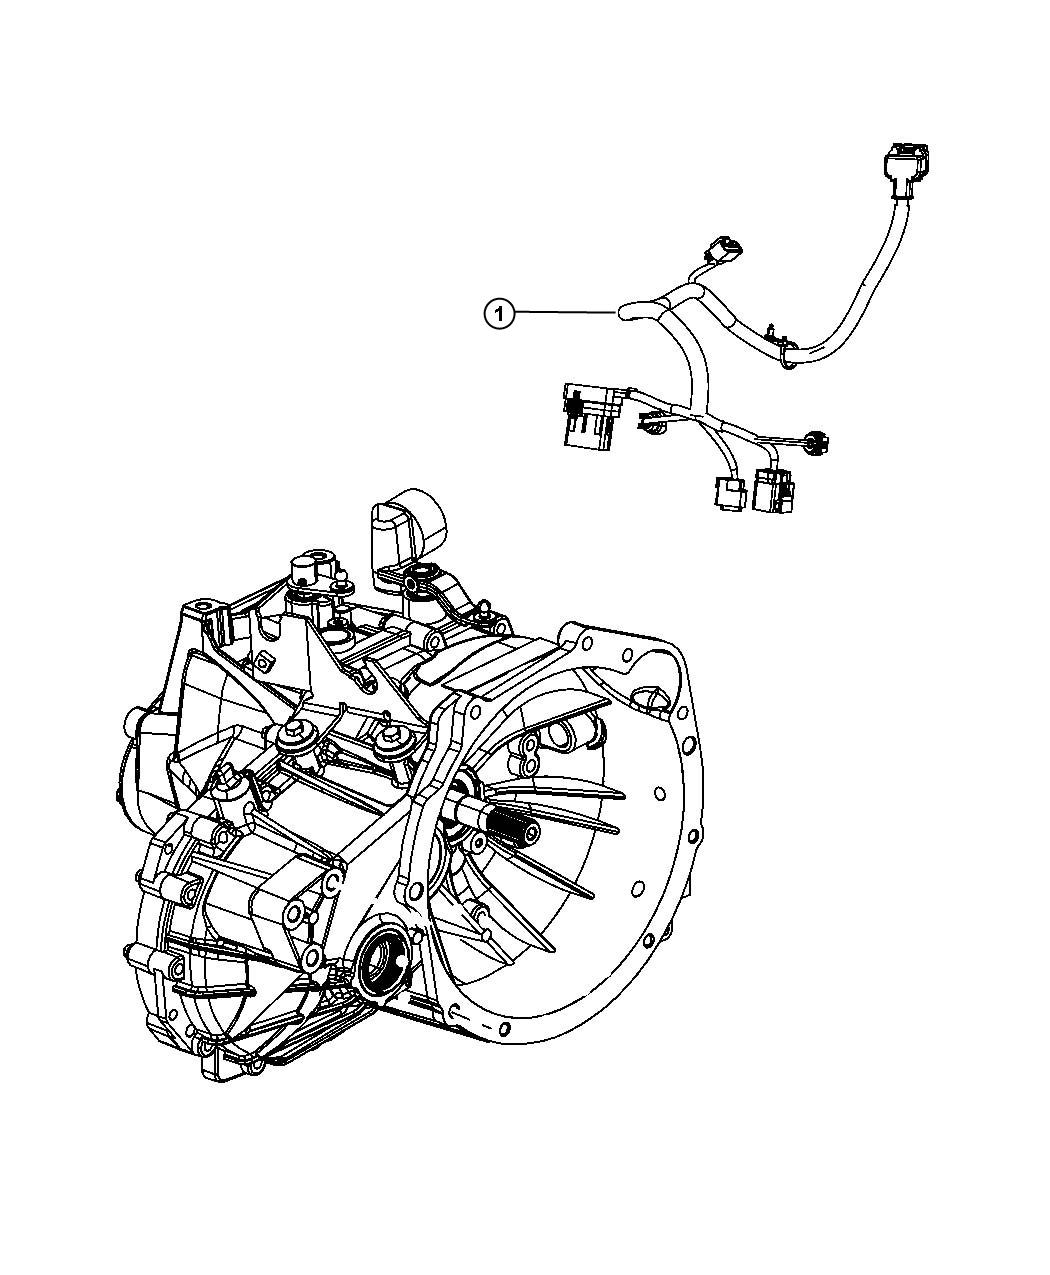 Chrysler 200 Bracket  Transmission Wiring Support